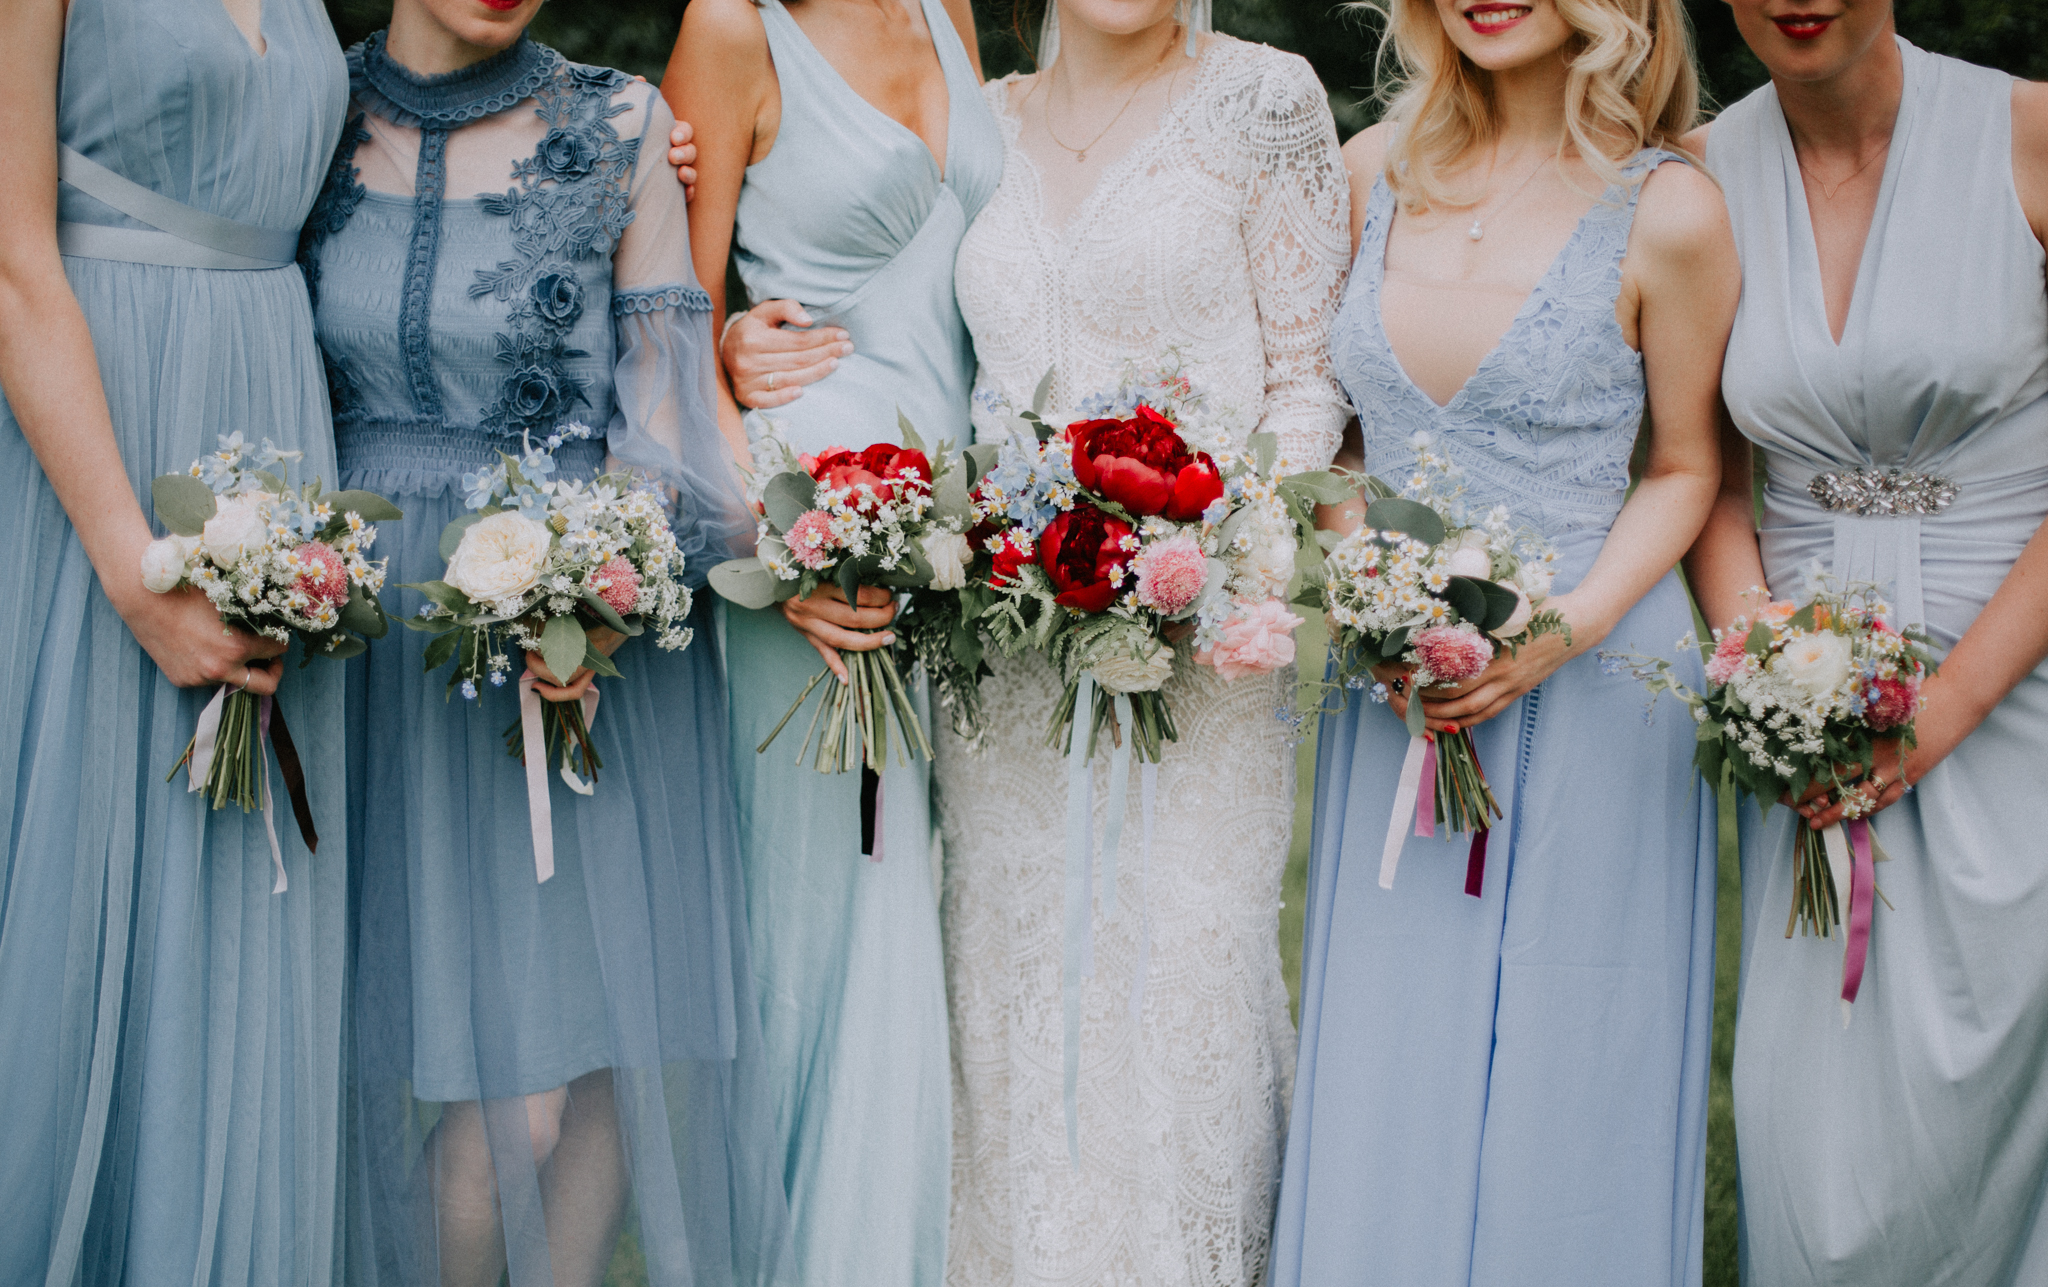 The close up shot of all boho girls at the wedding